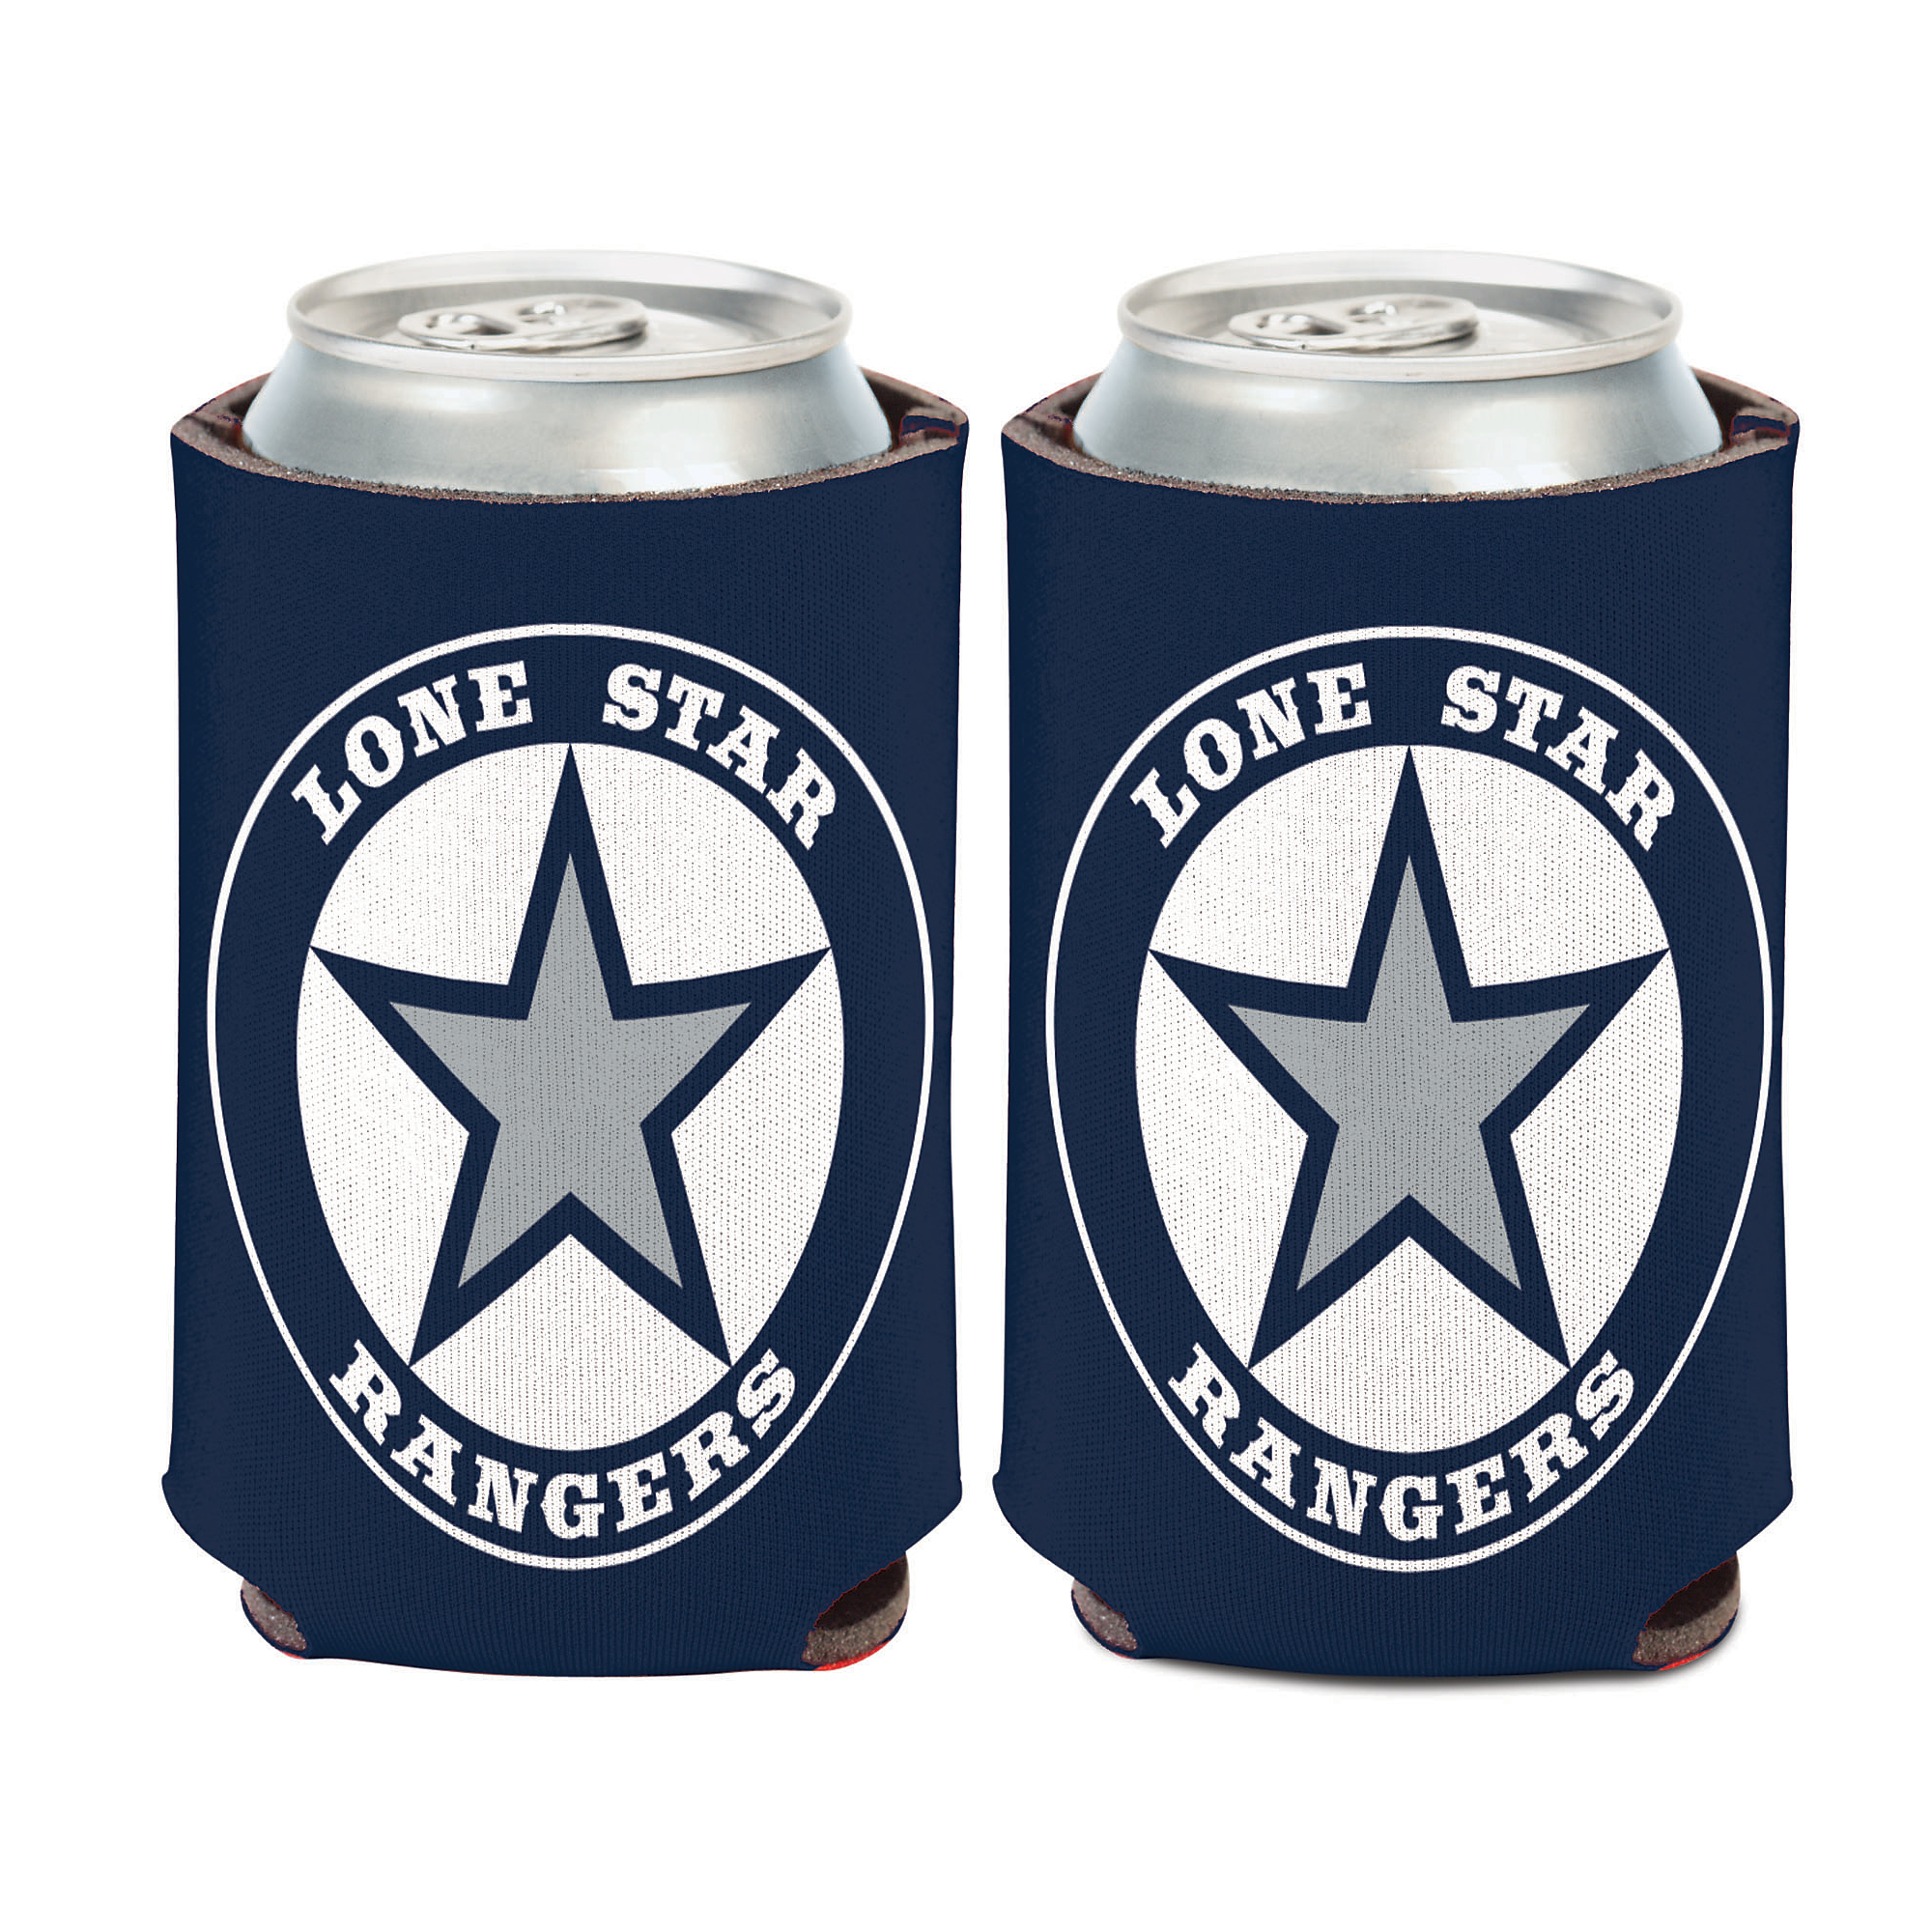 Lone Star Rangers 12 oz Can Cooler